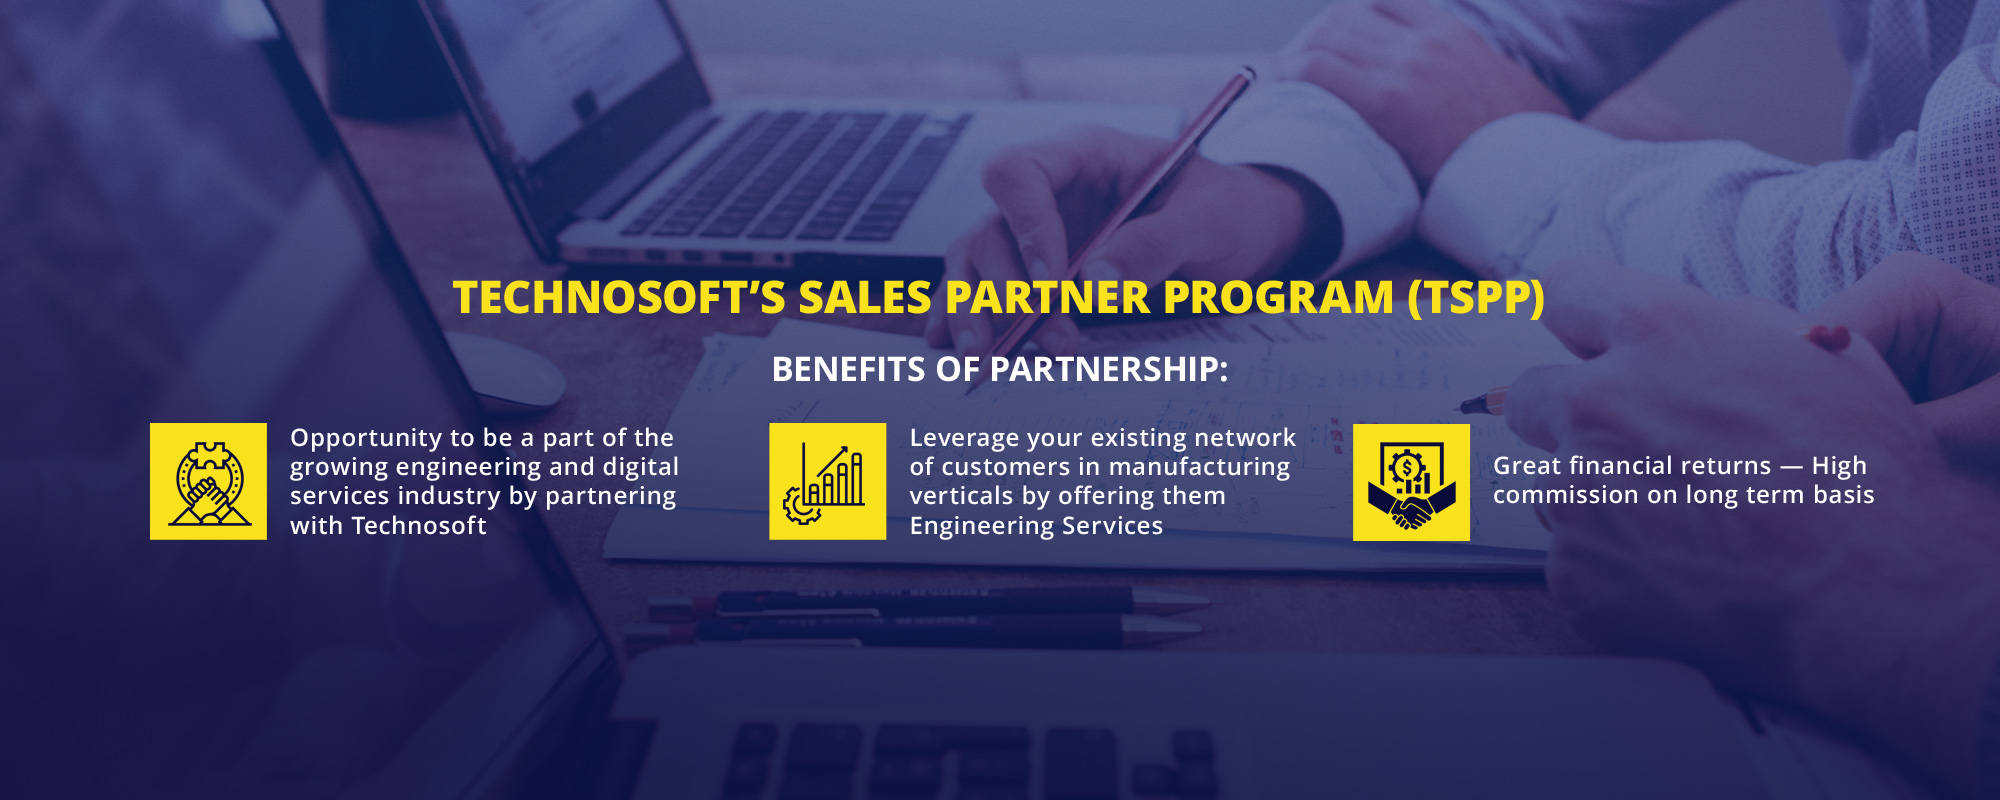 Technosoft's Sales Partner Program (TSPP)